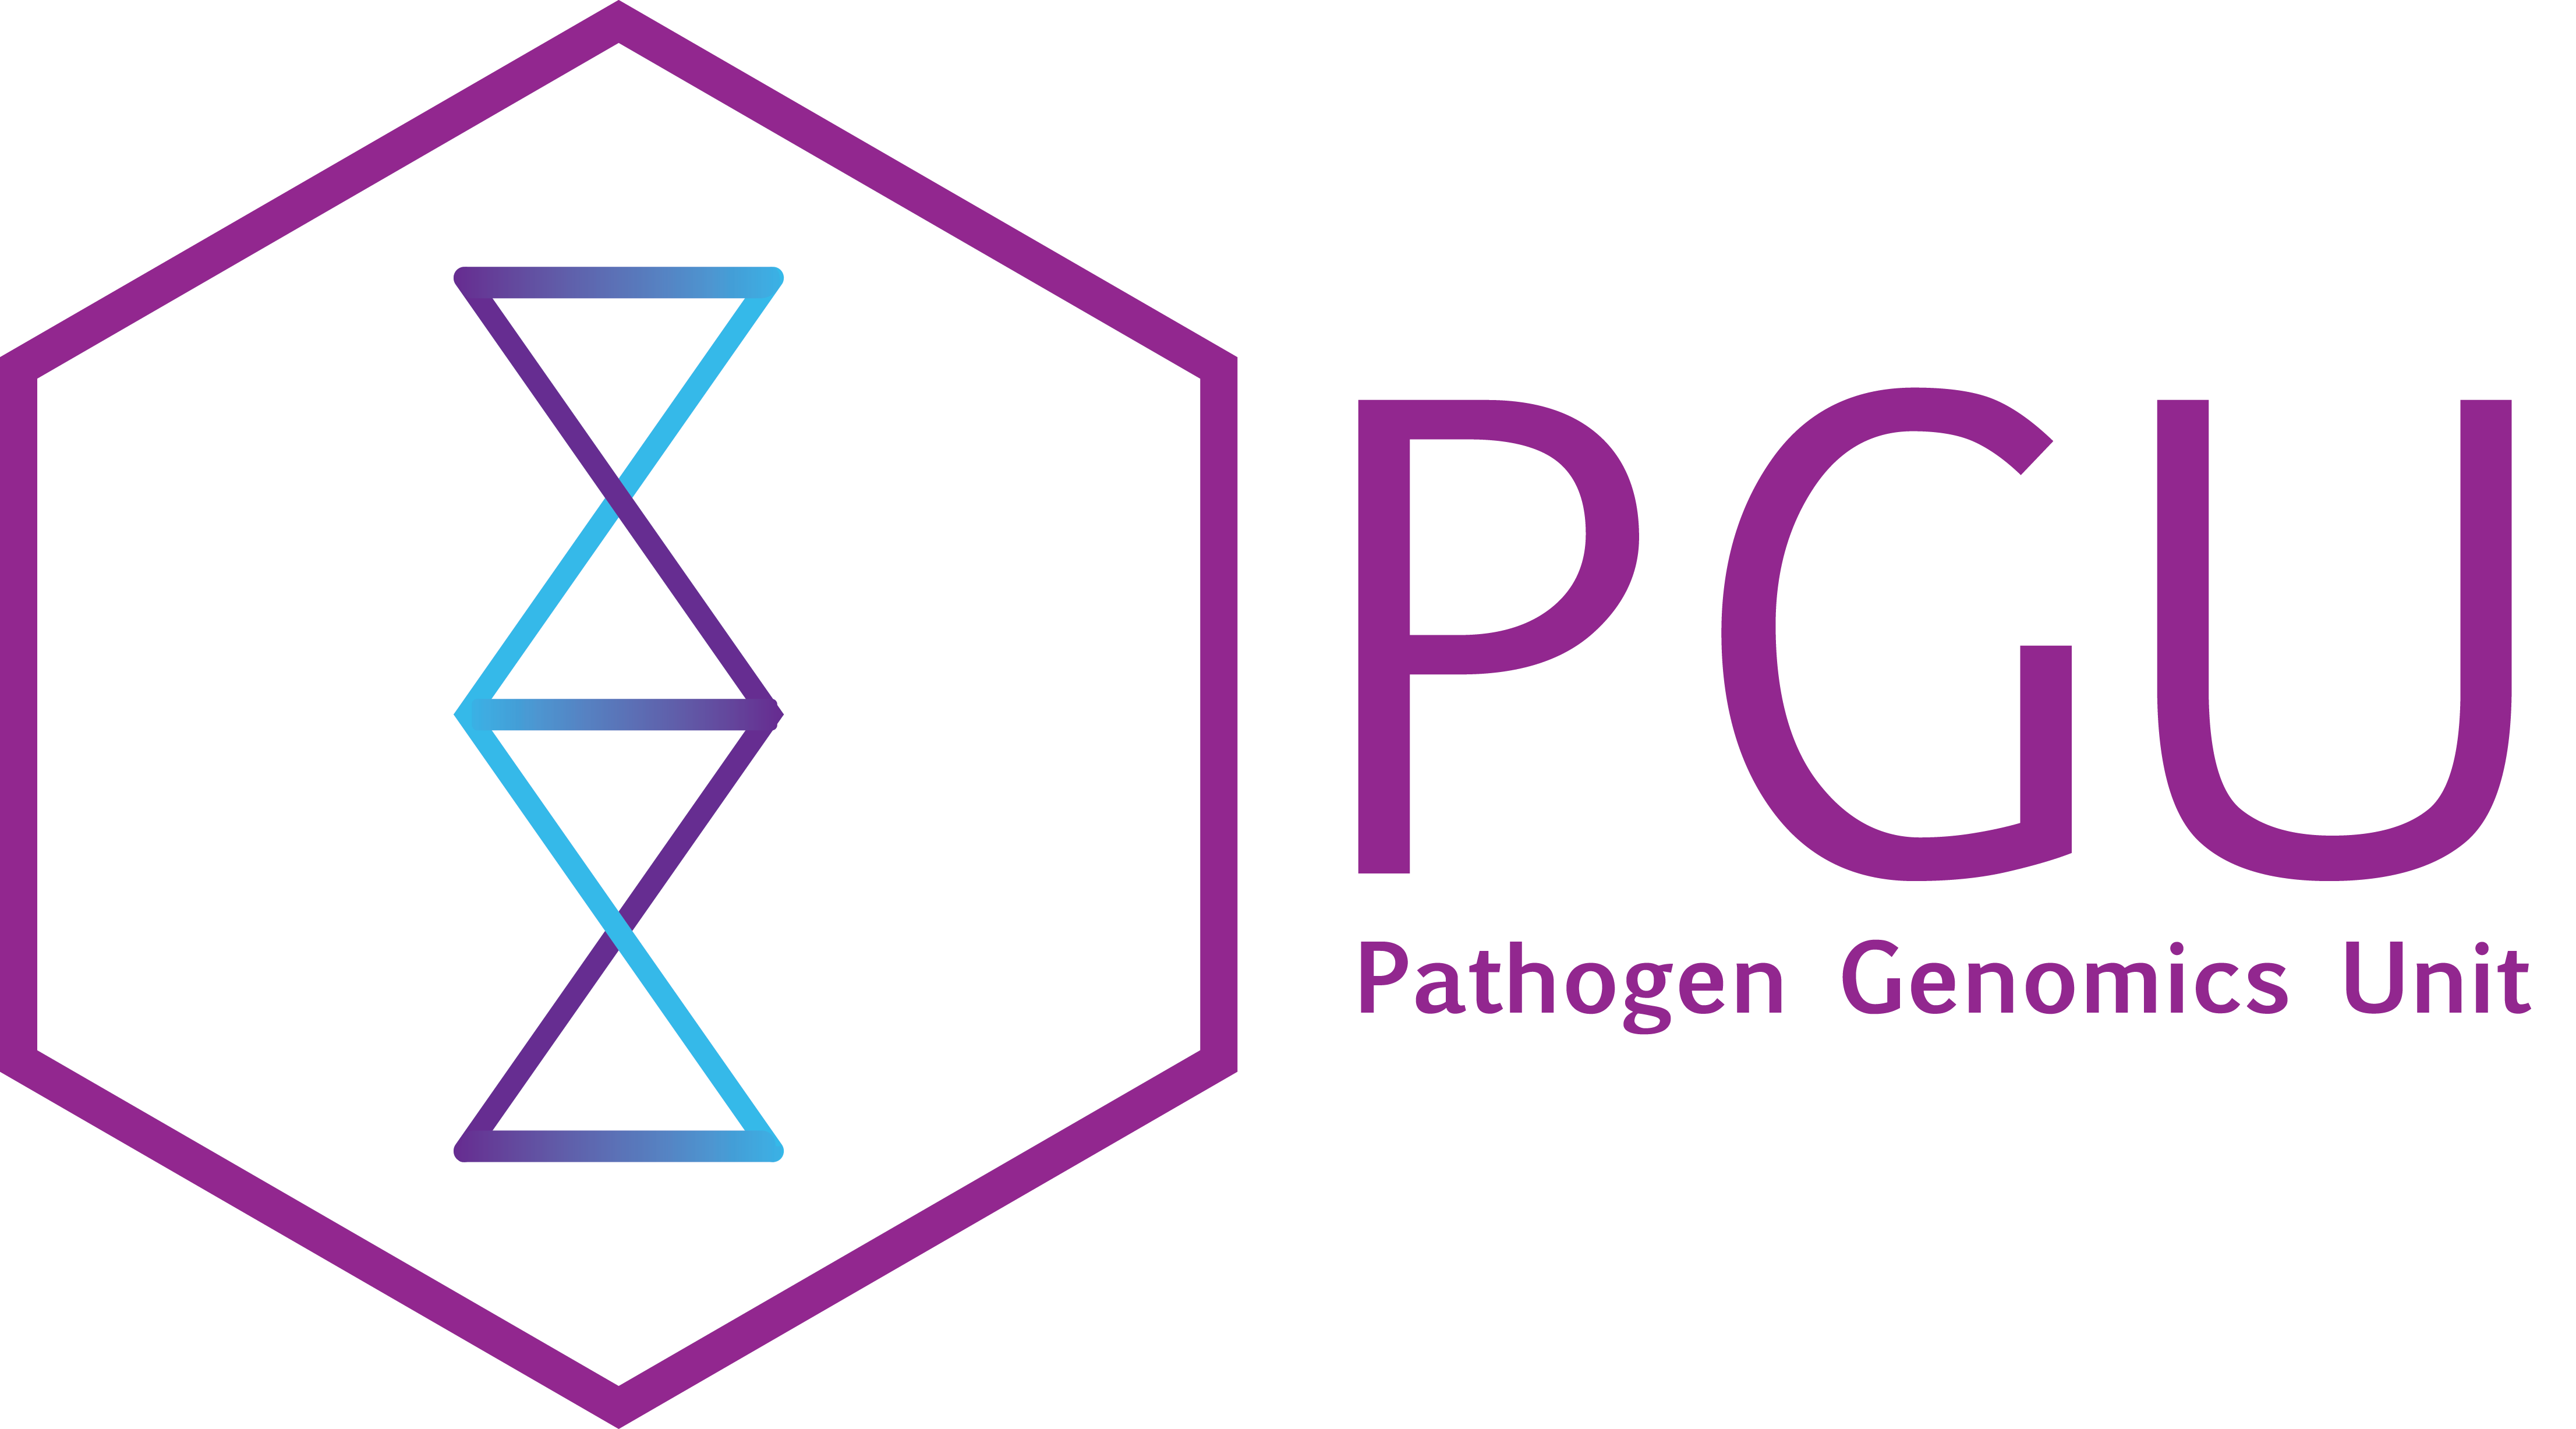 Pathogen Genomics Unit